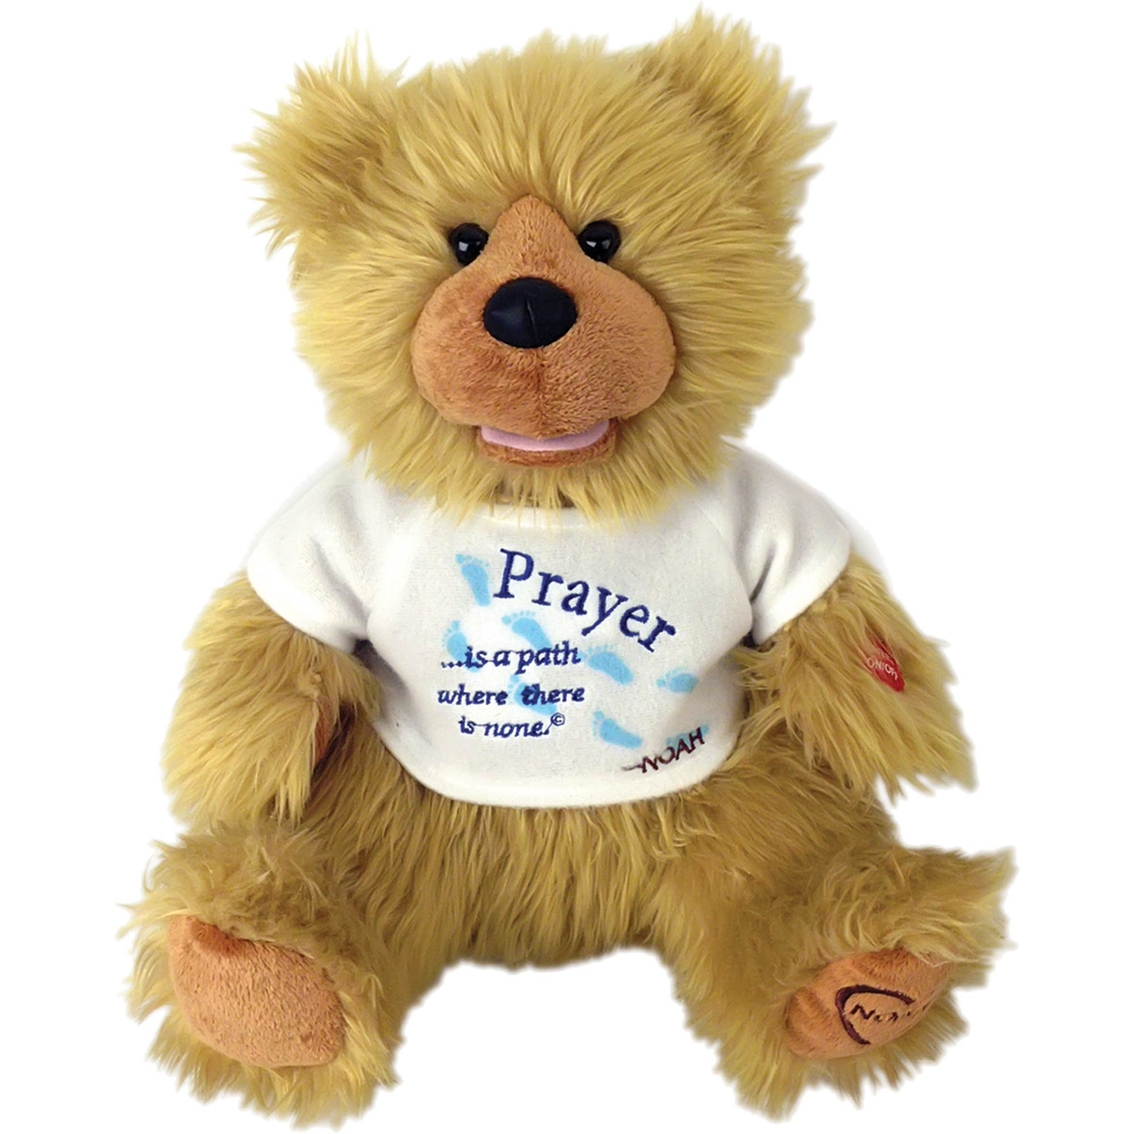 I want to share the story of the Noah Bears with you. We created these Bears many years ago, for adults seeking comfort and solace. Hundred of thousands of people have received the Prayer Bear or the Feel Better Bear and know that someone loves them, and is wishing them the very best. To order your Noah Prayer Bear on Amazon click here  http://bit.ly/PrayerBear